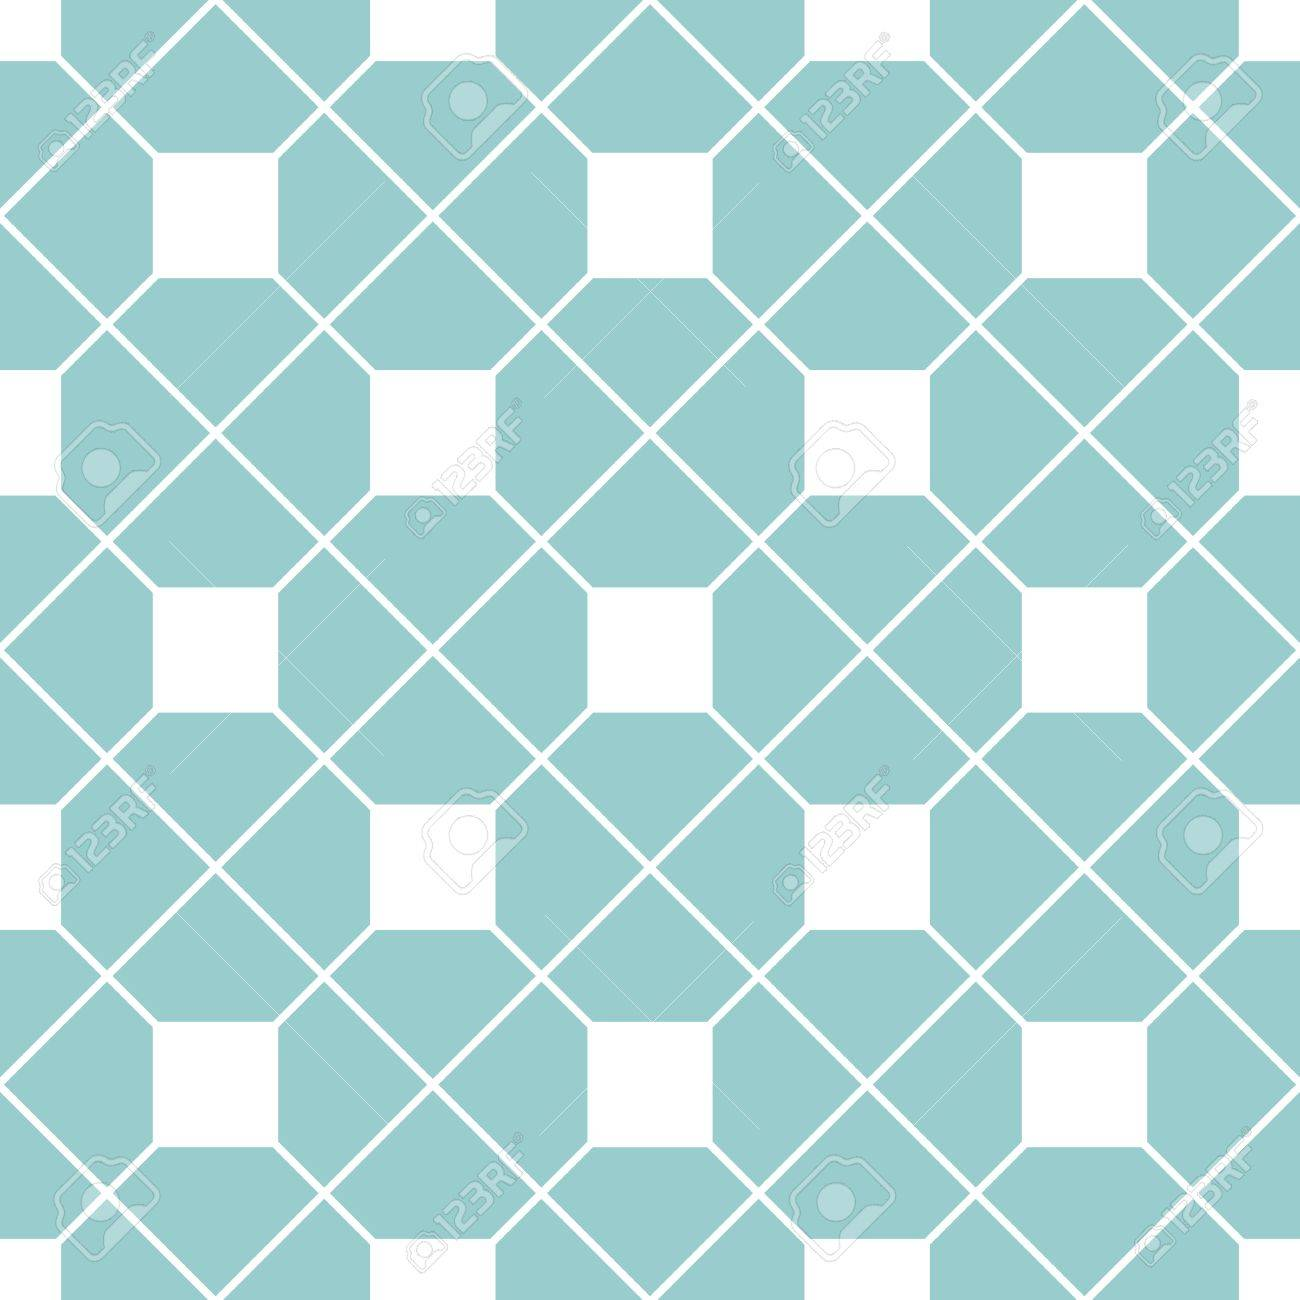 Checkered Tile Pattern Or Mint Green And White Wallpaper Background ...